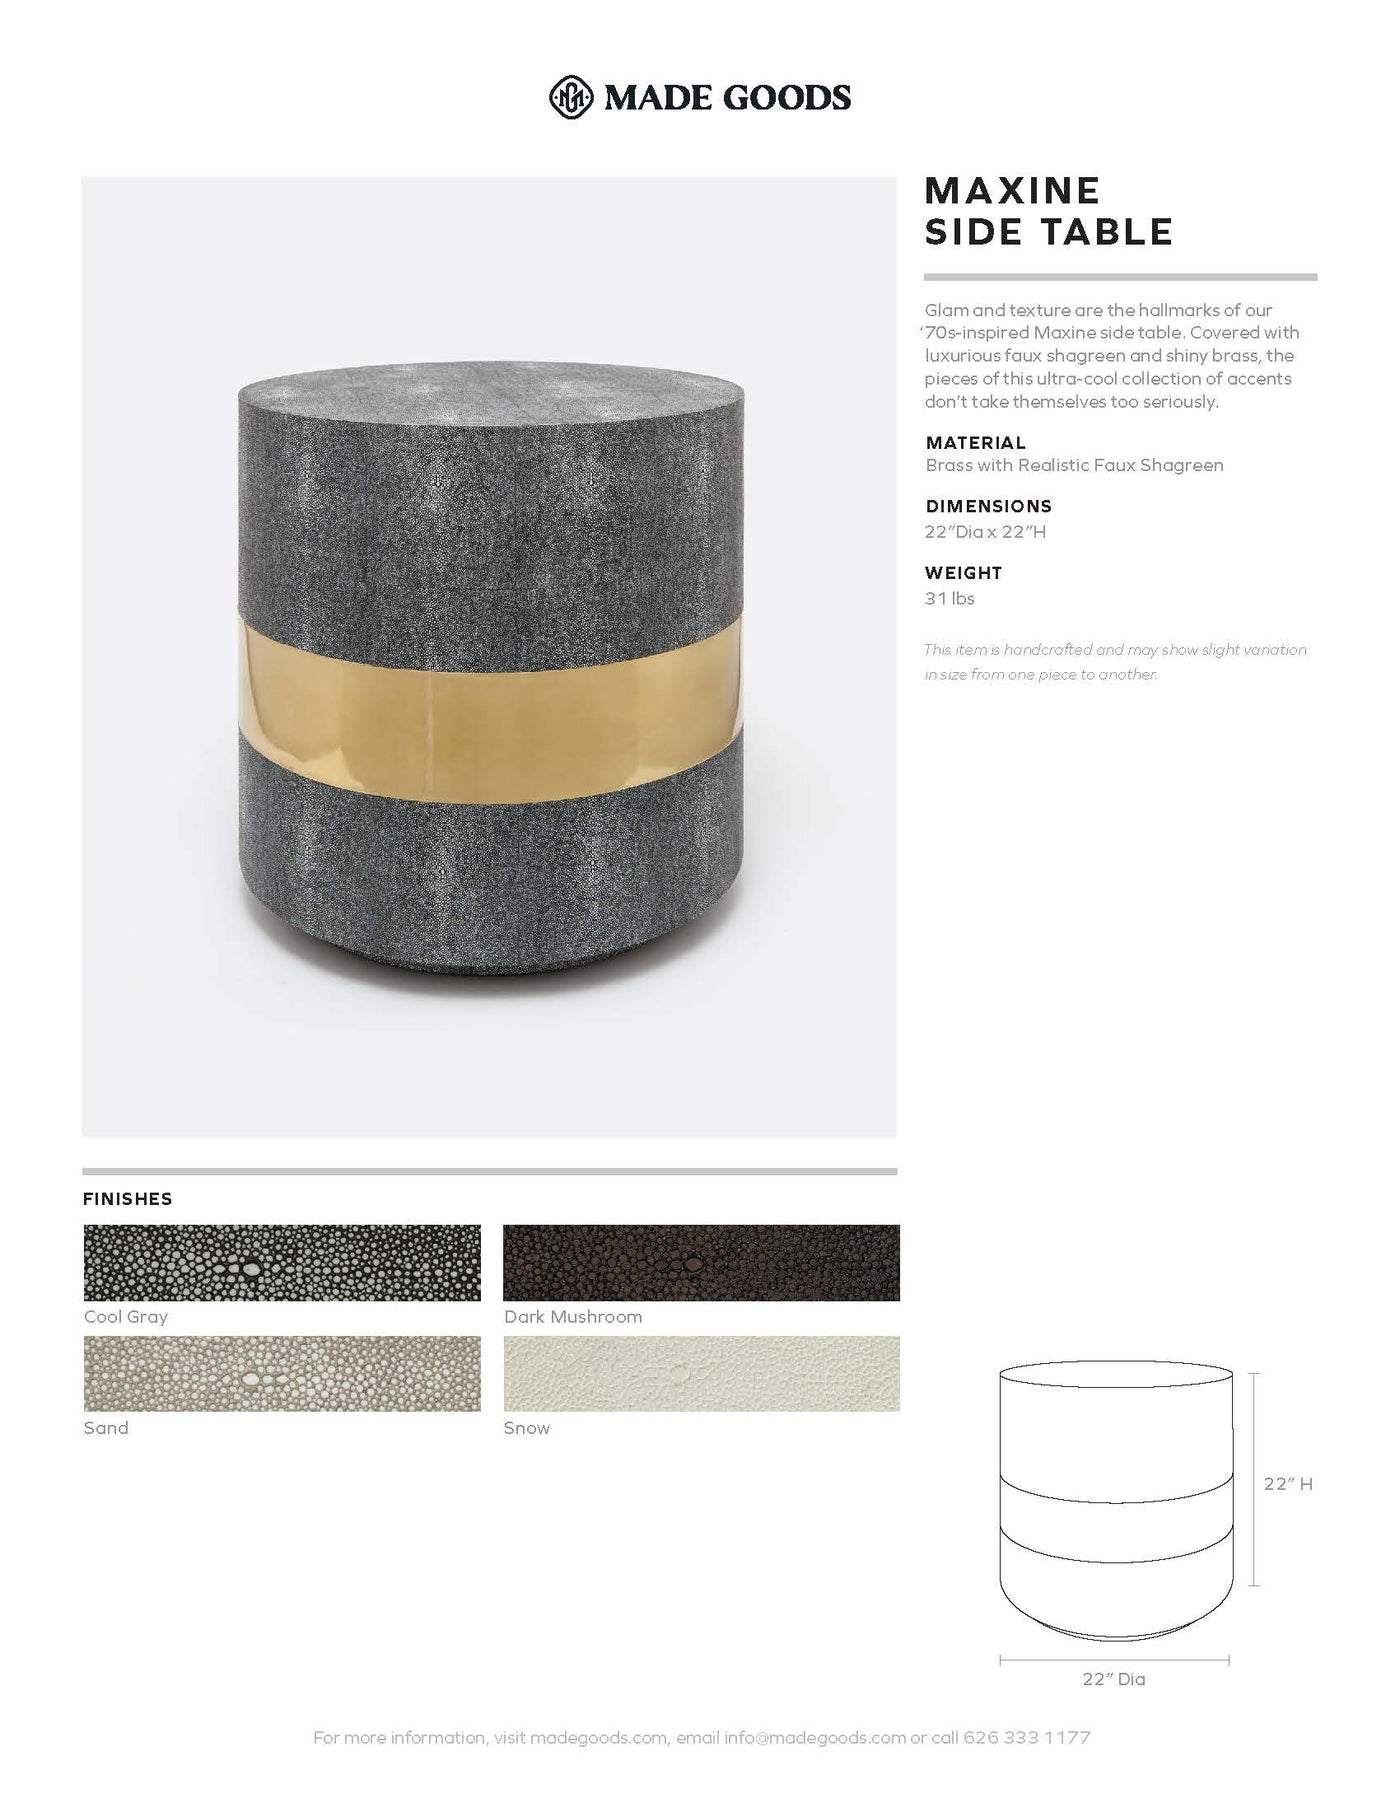 Made Goods Maxine Side Table Tearsheet